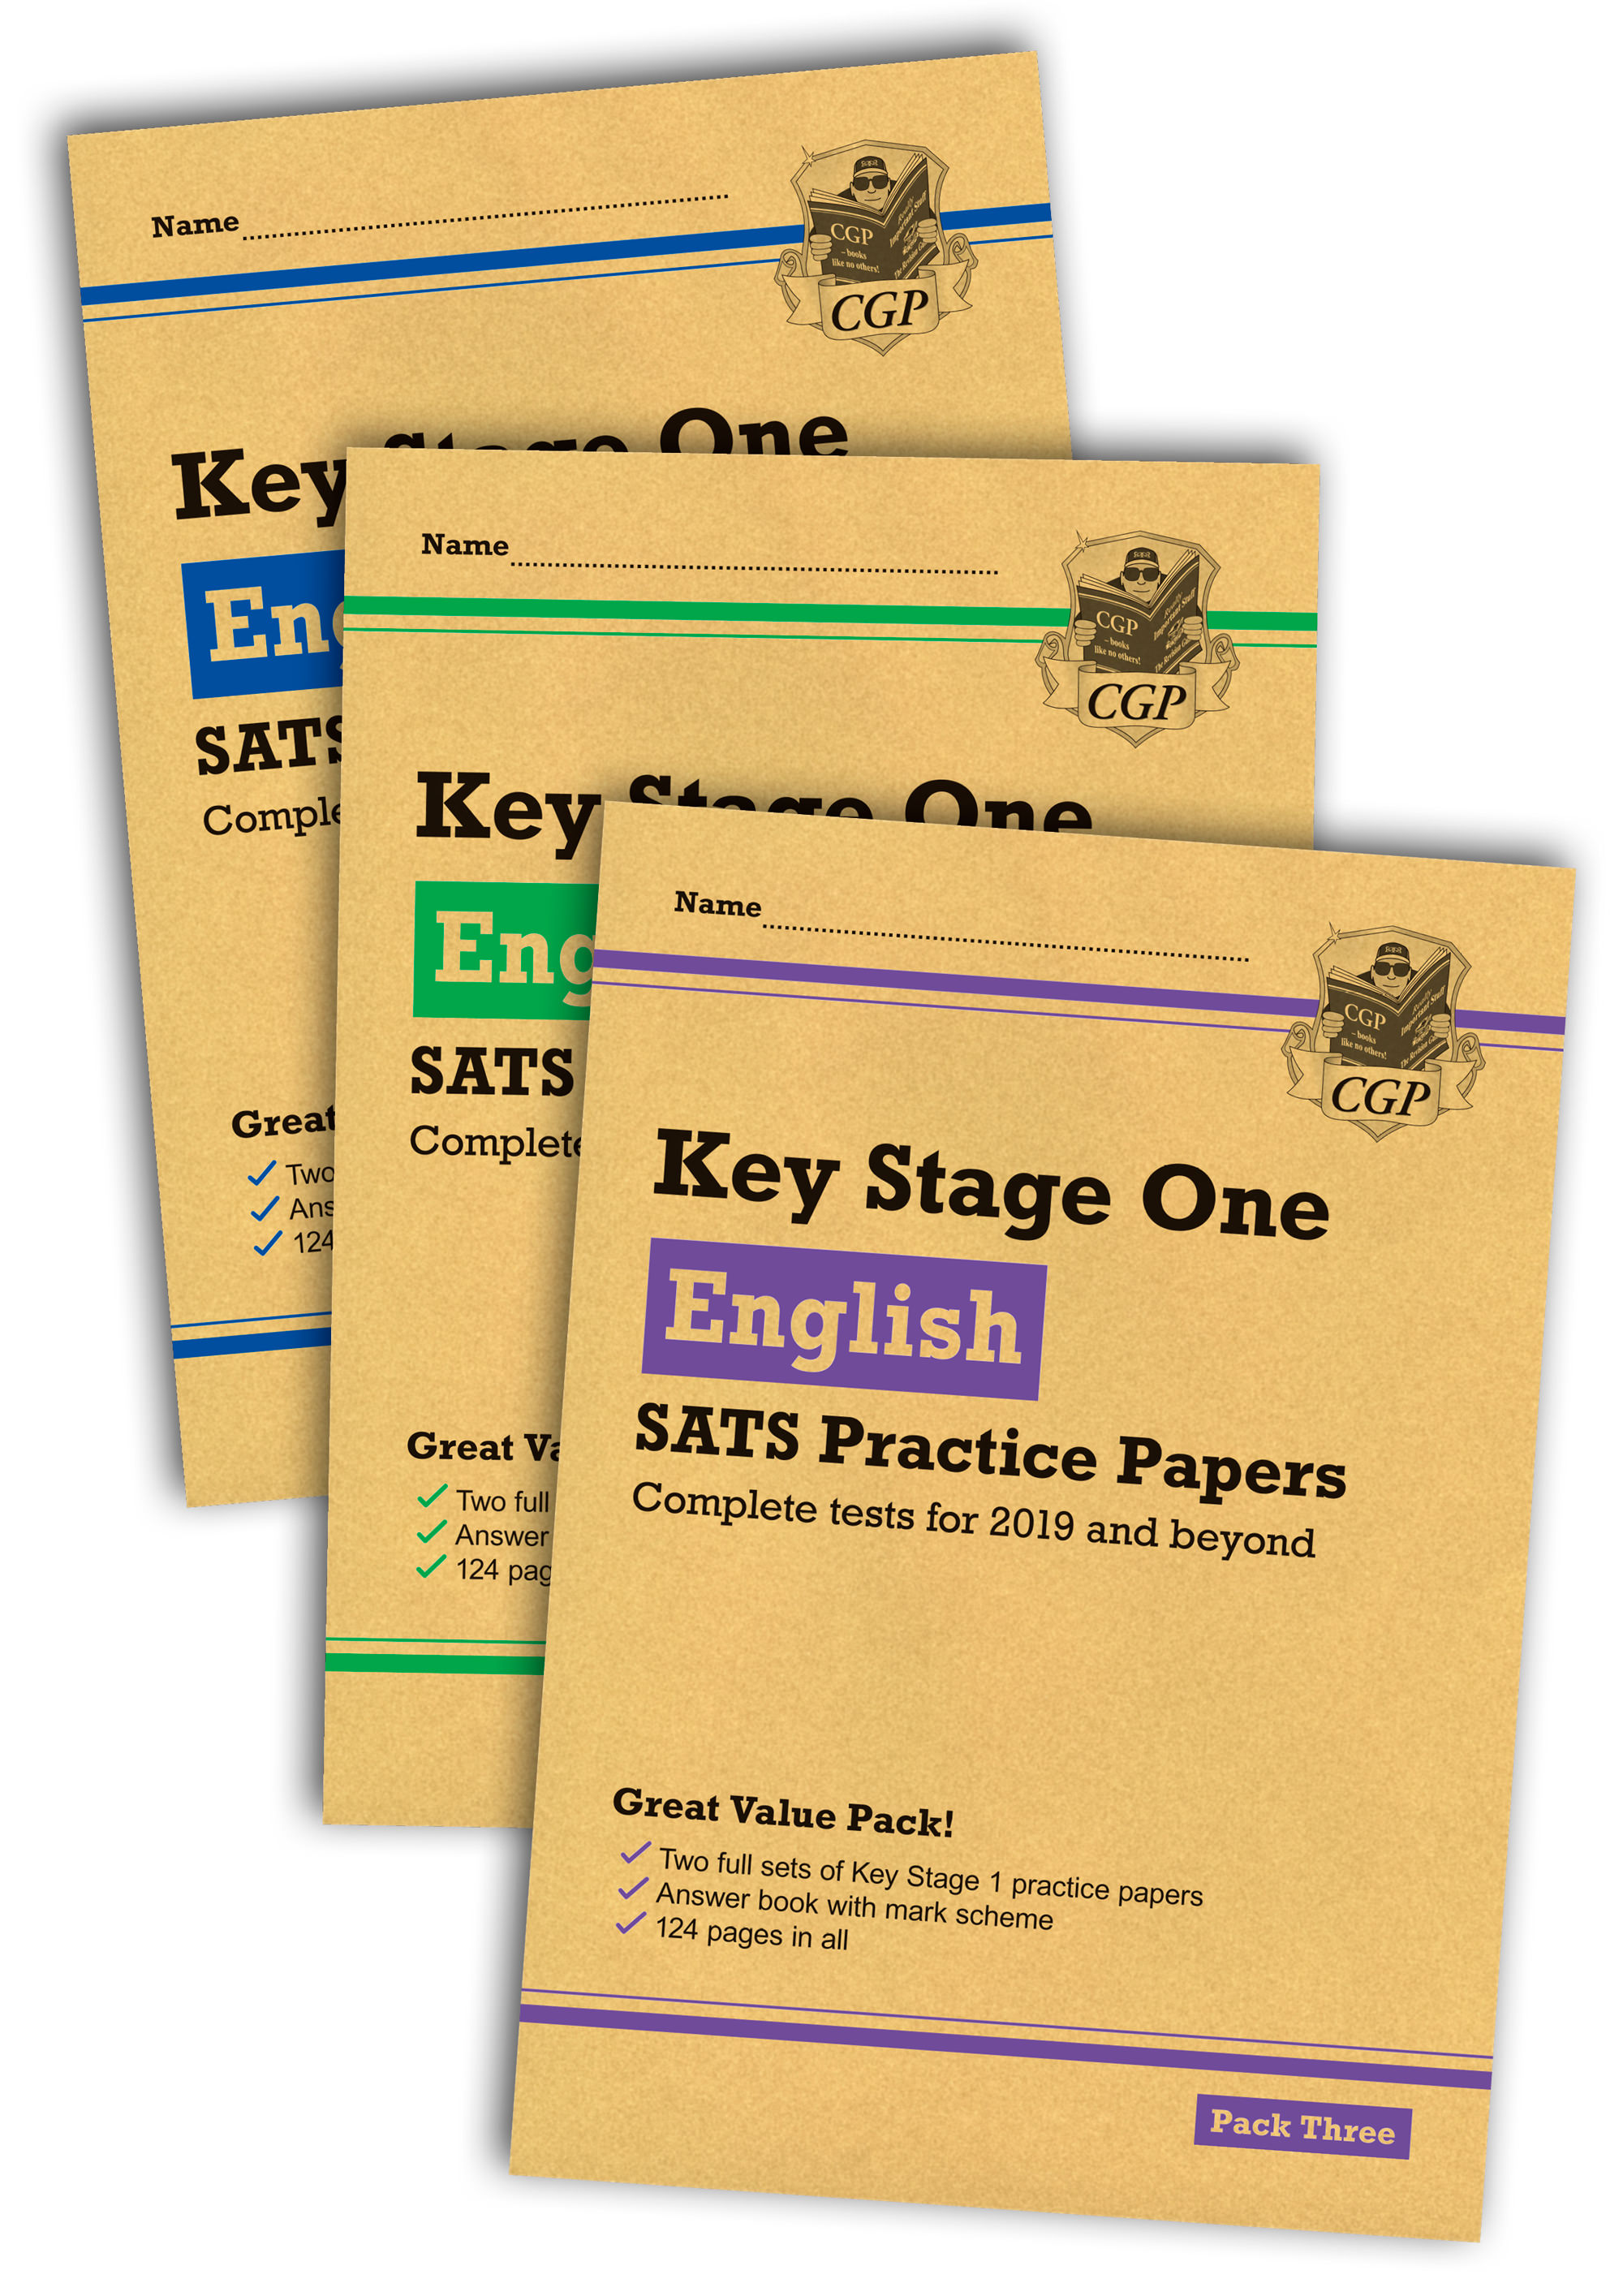 EHB3P13 - New KS1 English SATS Practice Paper Bundle: Packs 1, 2 & 3 (for the 2020 tests)